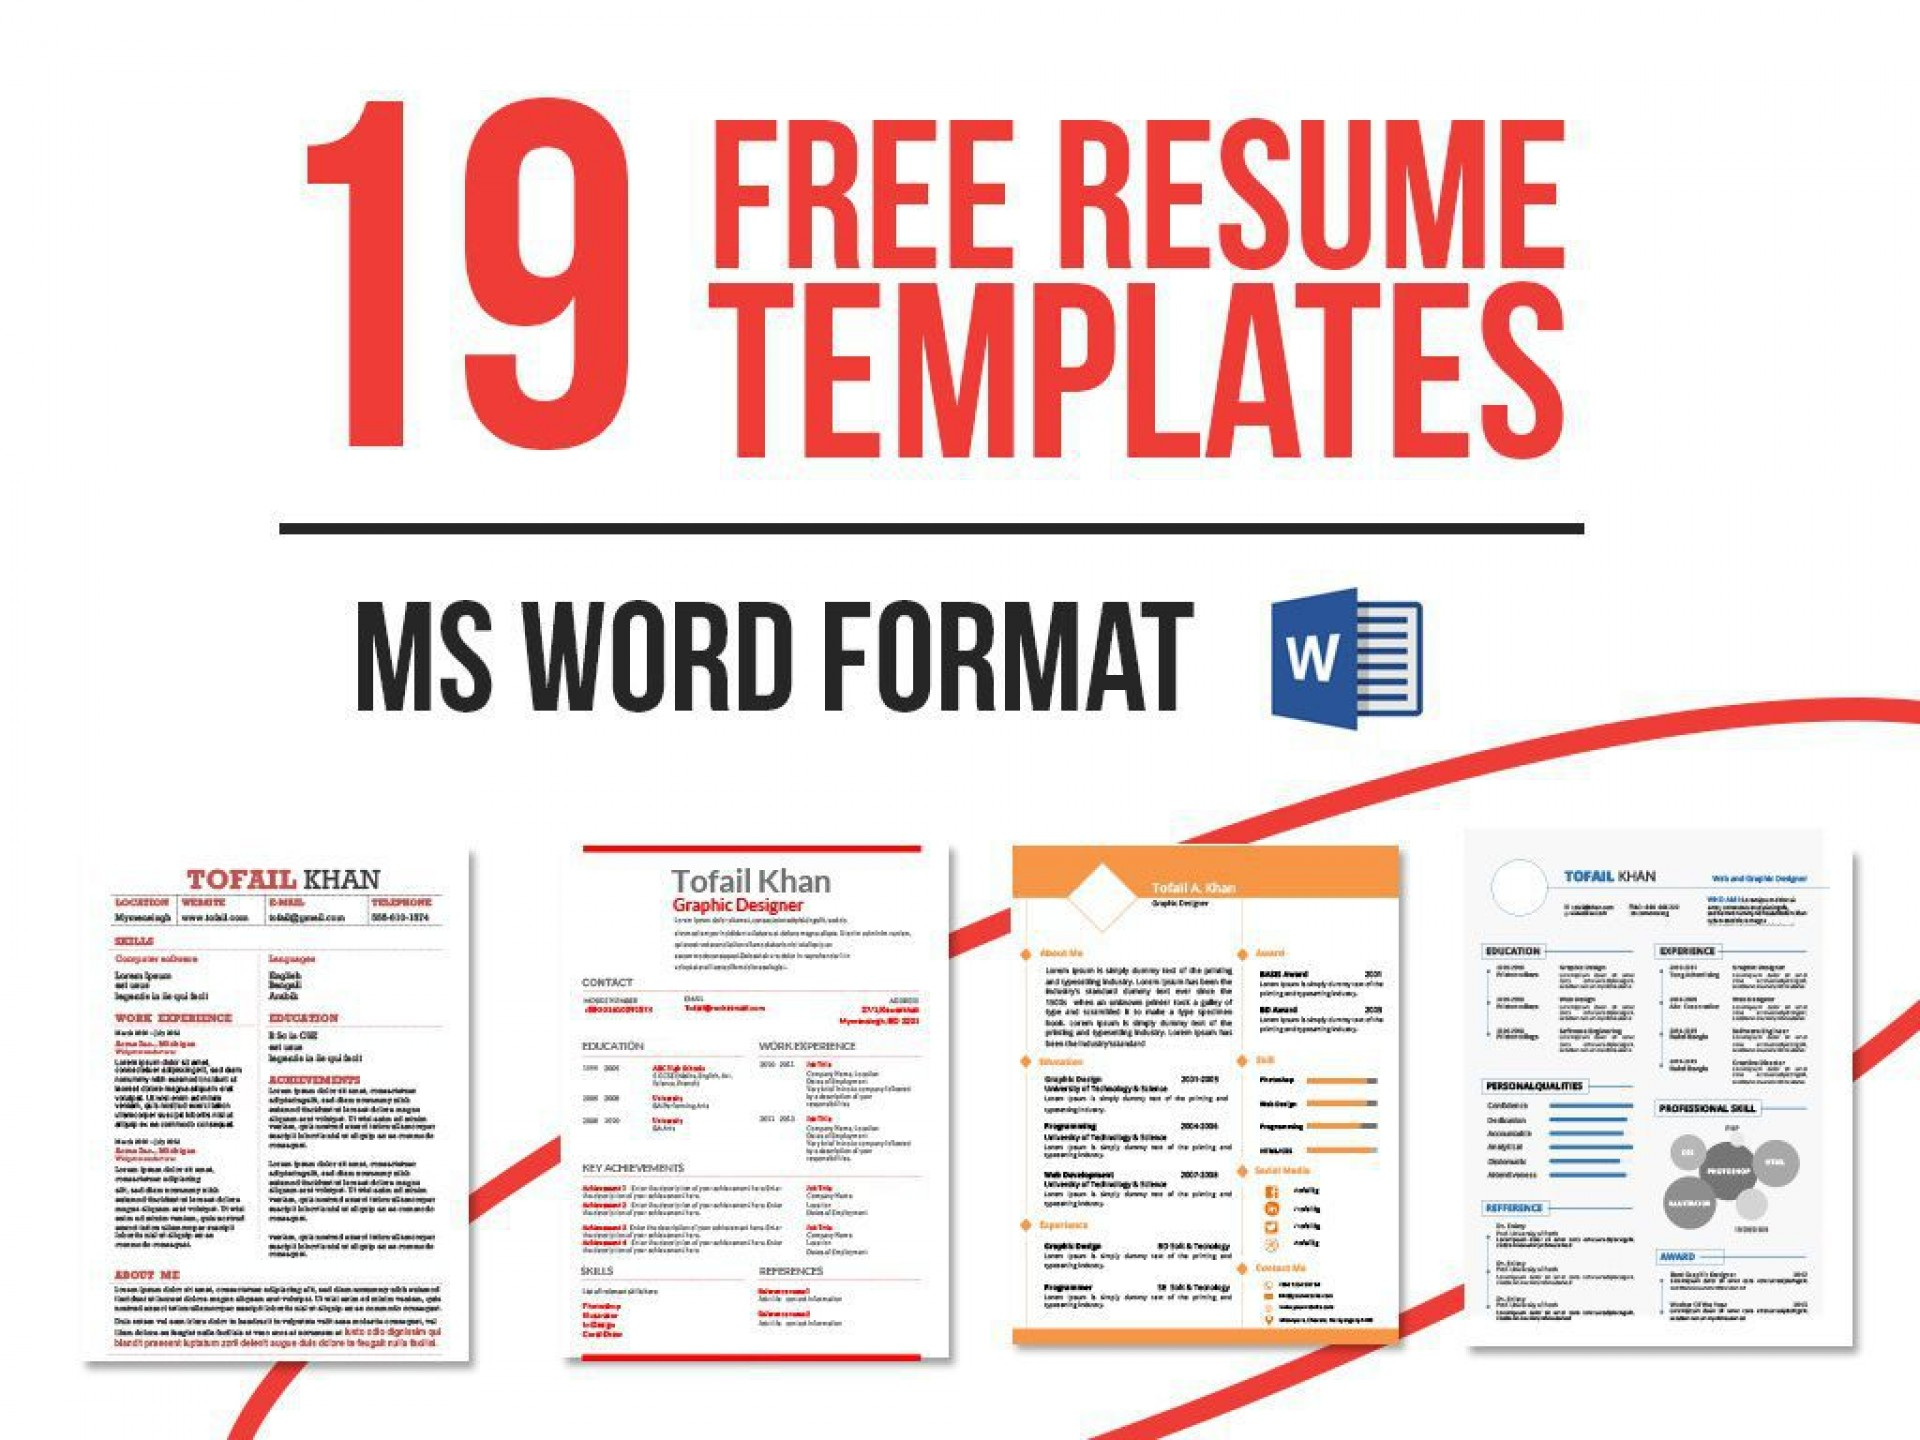 003 Incredible Download Resume Template Free Word High Resolution  Attractive Microsoft Simple For Creative1920